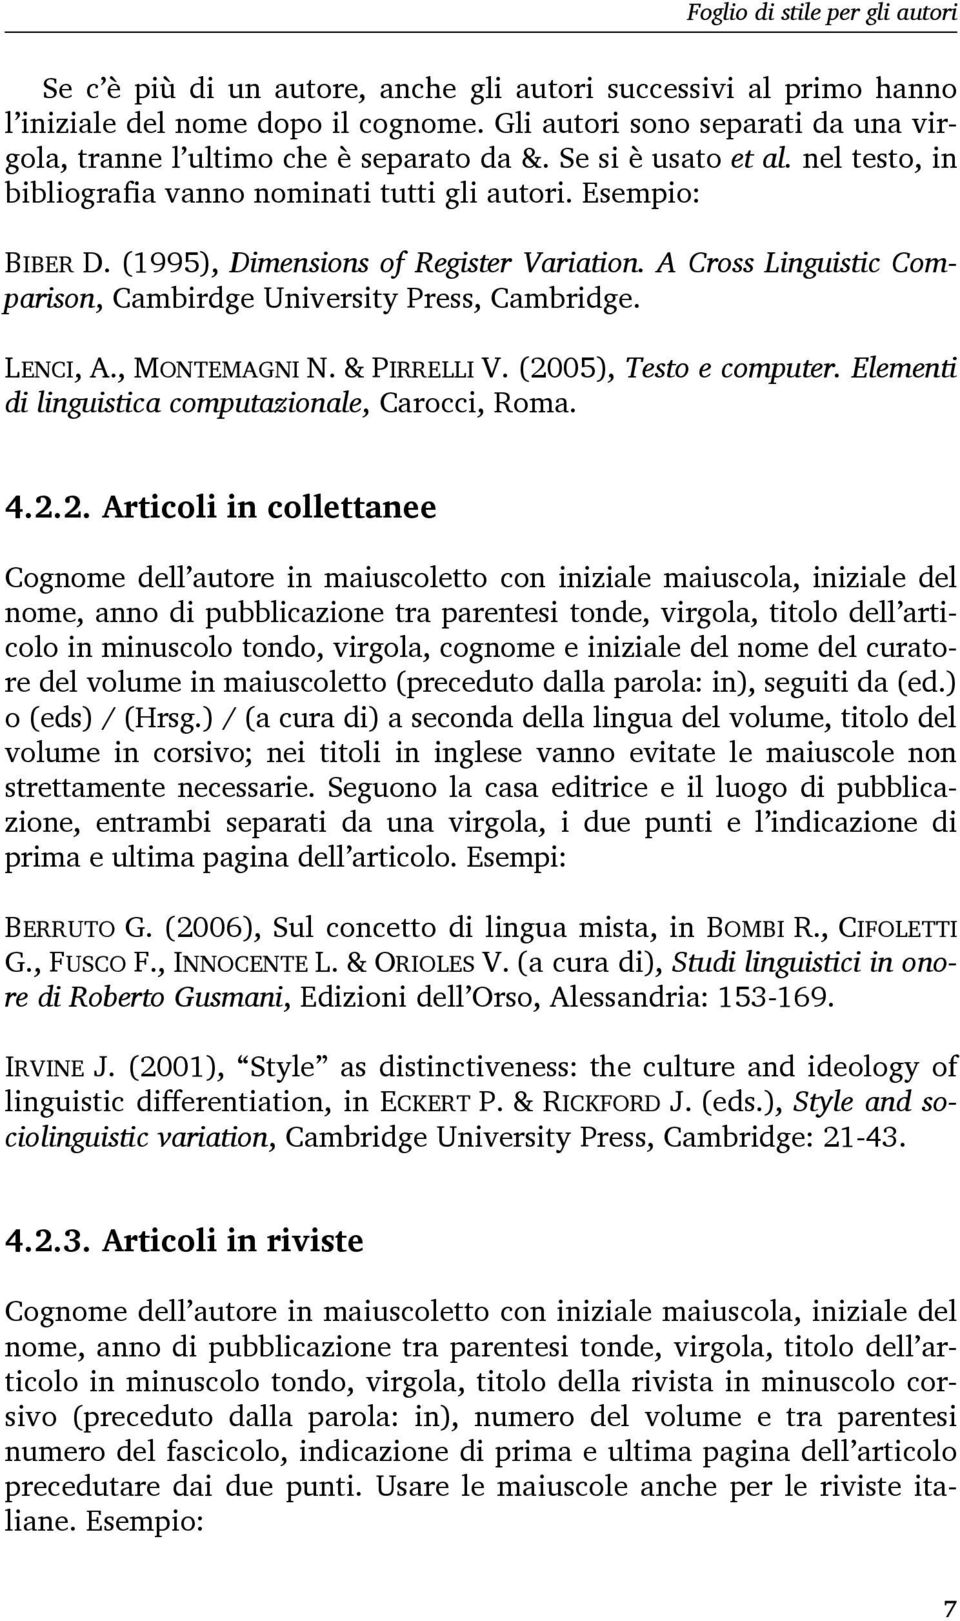 (1995), Dimensions of Register Variation. A Cross Linguistic Comparison, Cambirdge University Press, Cambridge. LENCI, A., MONTEMAGNI N. & PIRRELLI V. (2005), Testo e computer.